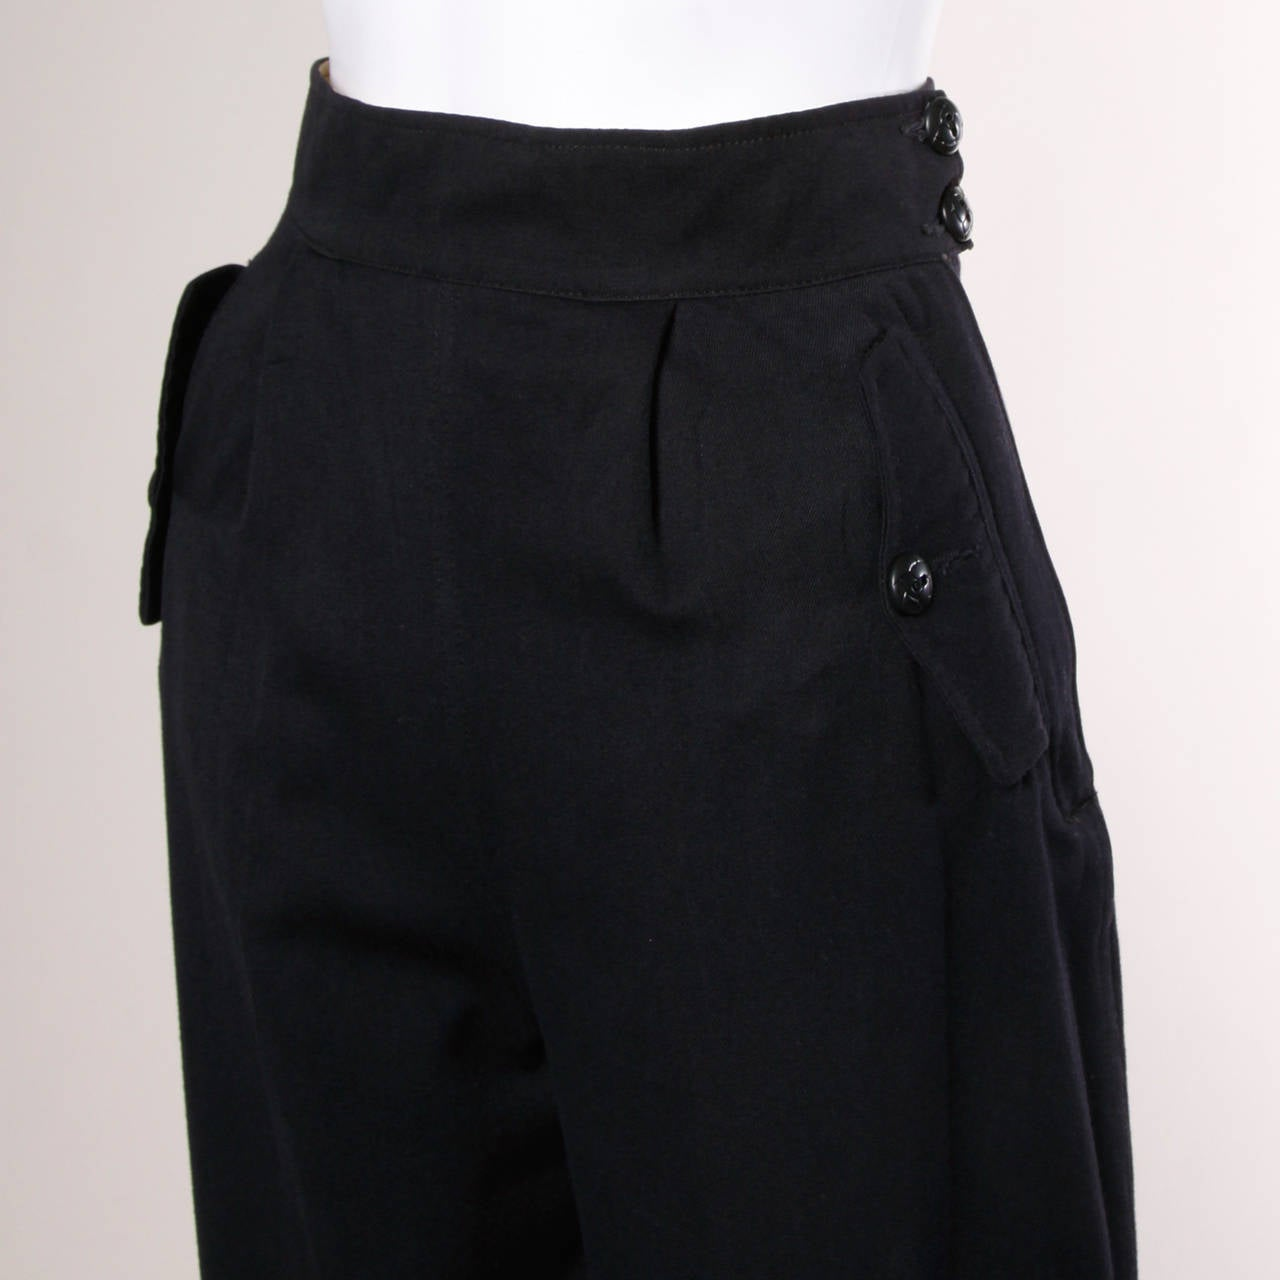 1940s Vintage Navy Blue Wool High Waisted Riding Pants with Stirrups 3